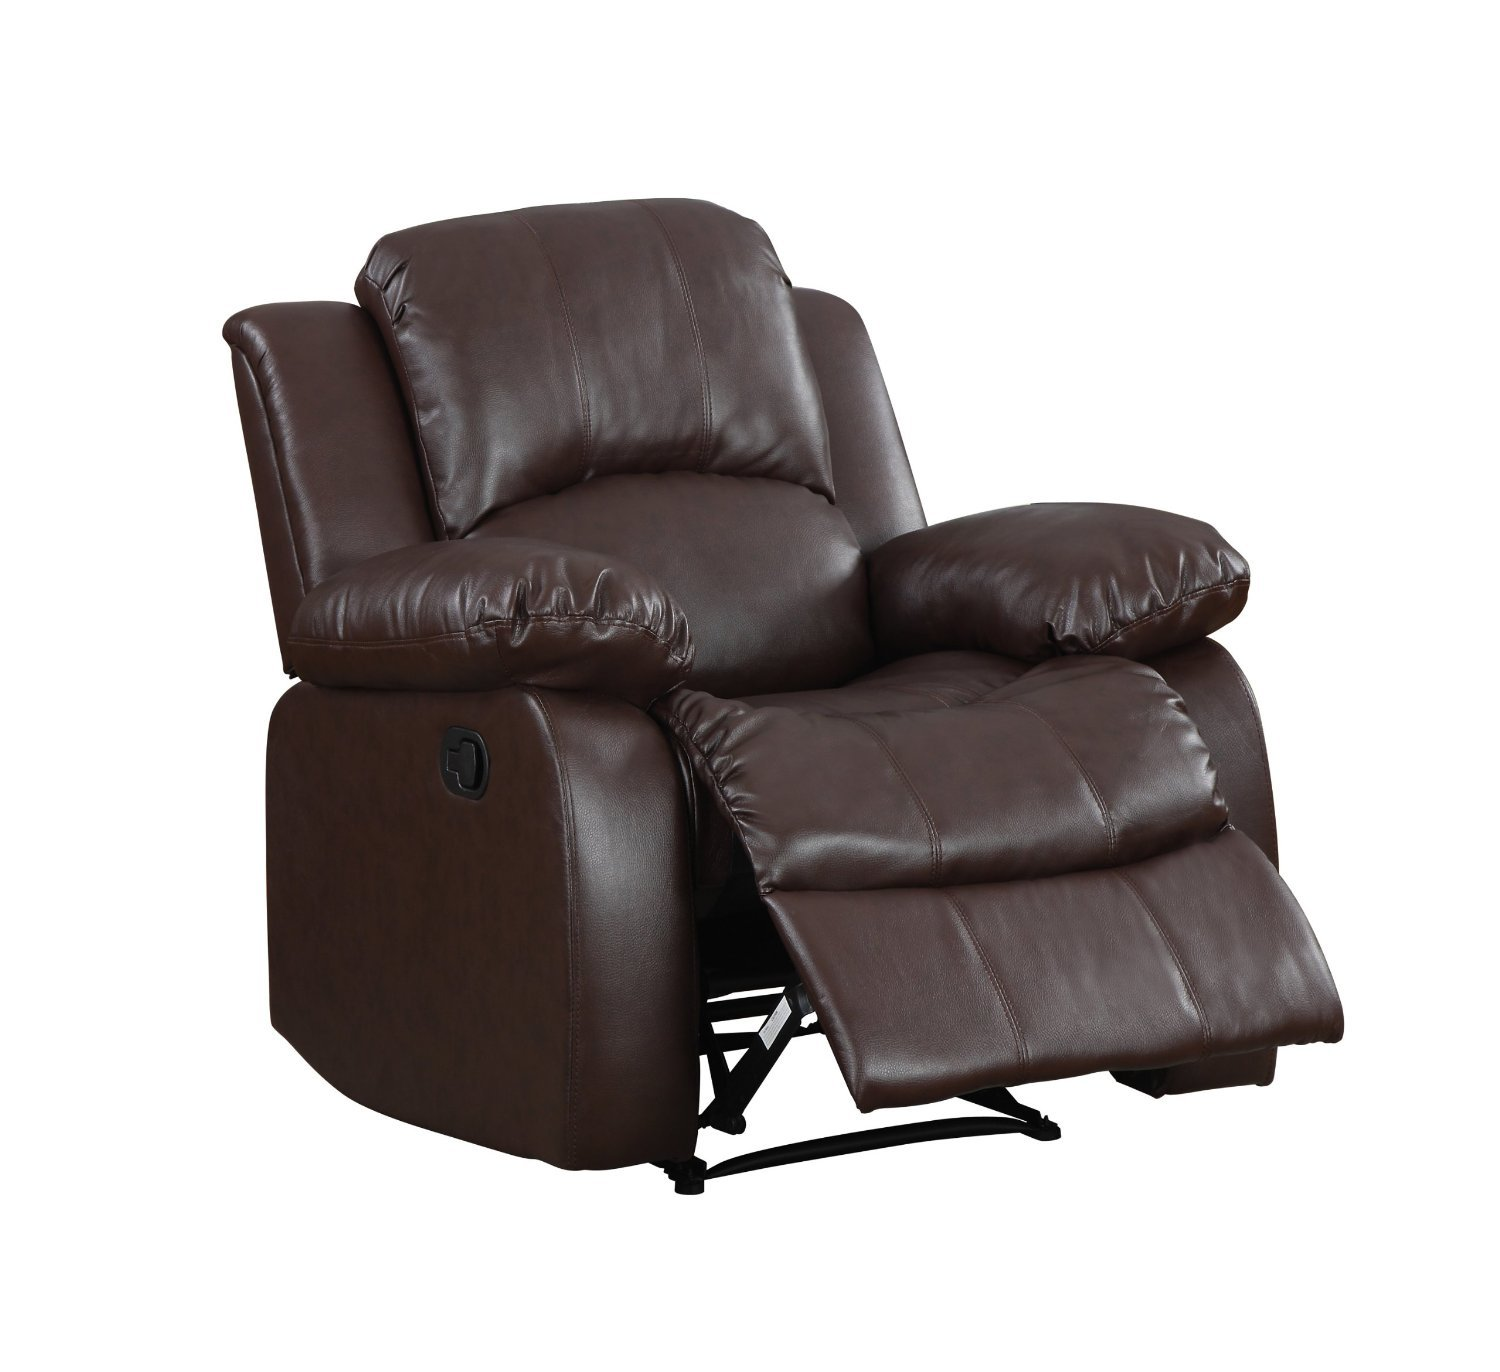 Amazon Classic and Traditional Bonded Leather Recliner Chair